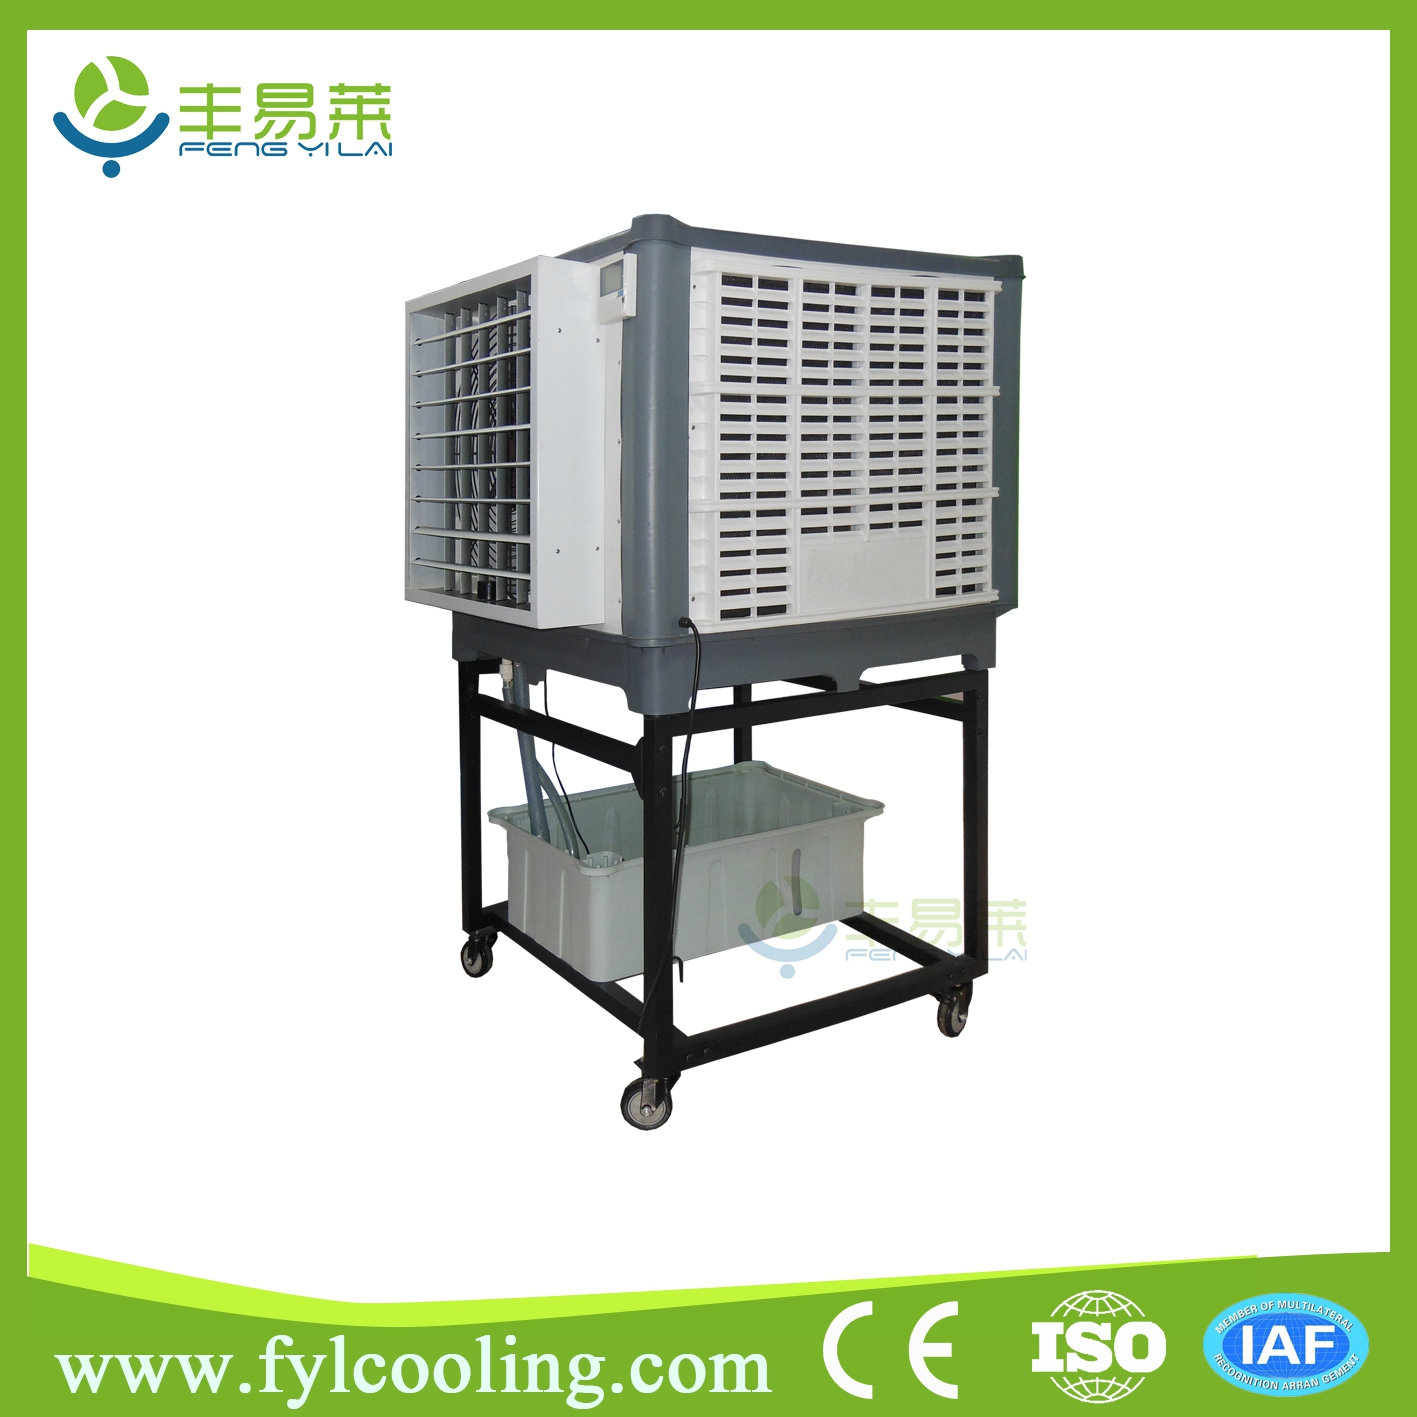 Air Cooled Chiller P Id - hephh.com Coolers, Devices